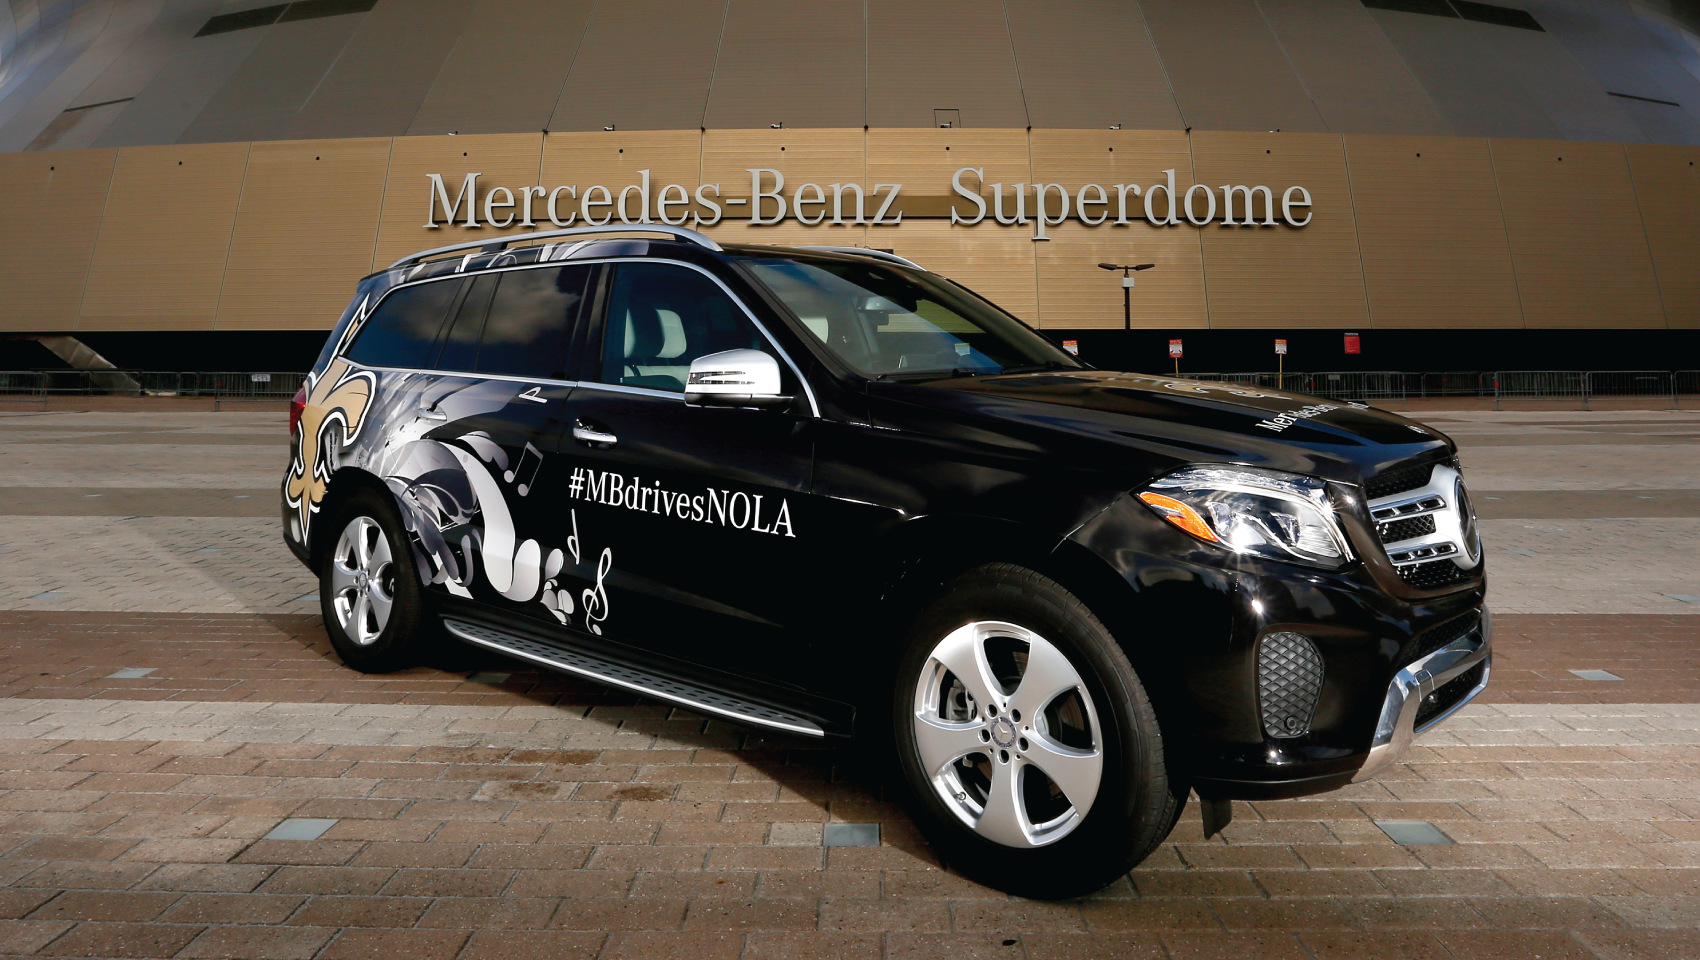 Mercedes benz vip gameday package giveaway uber for Mercedes benz giveaway